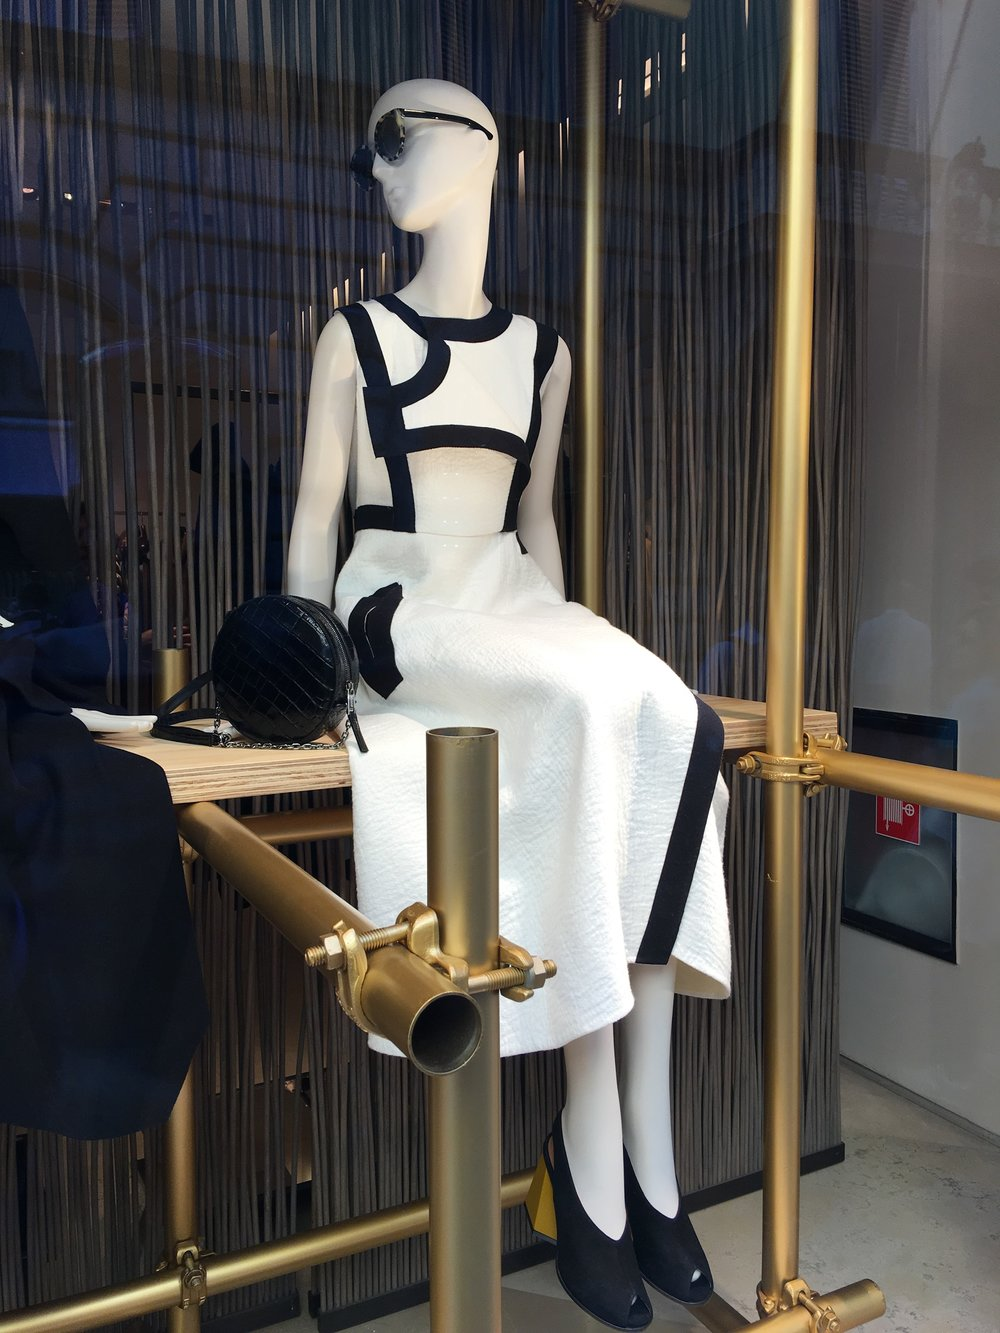 Max Mara black and white dress, FW16/17 in the Rome window display